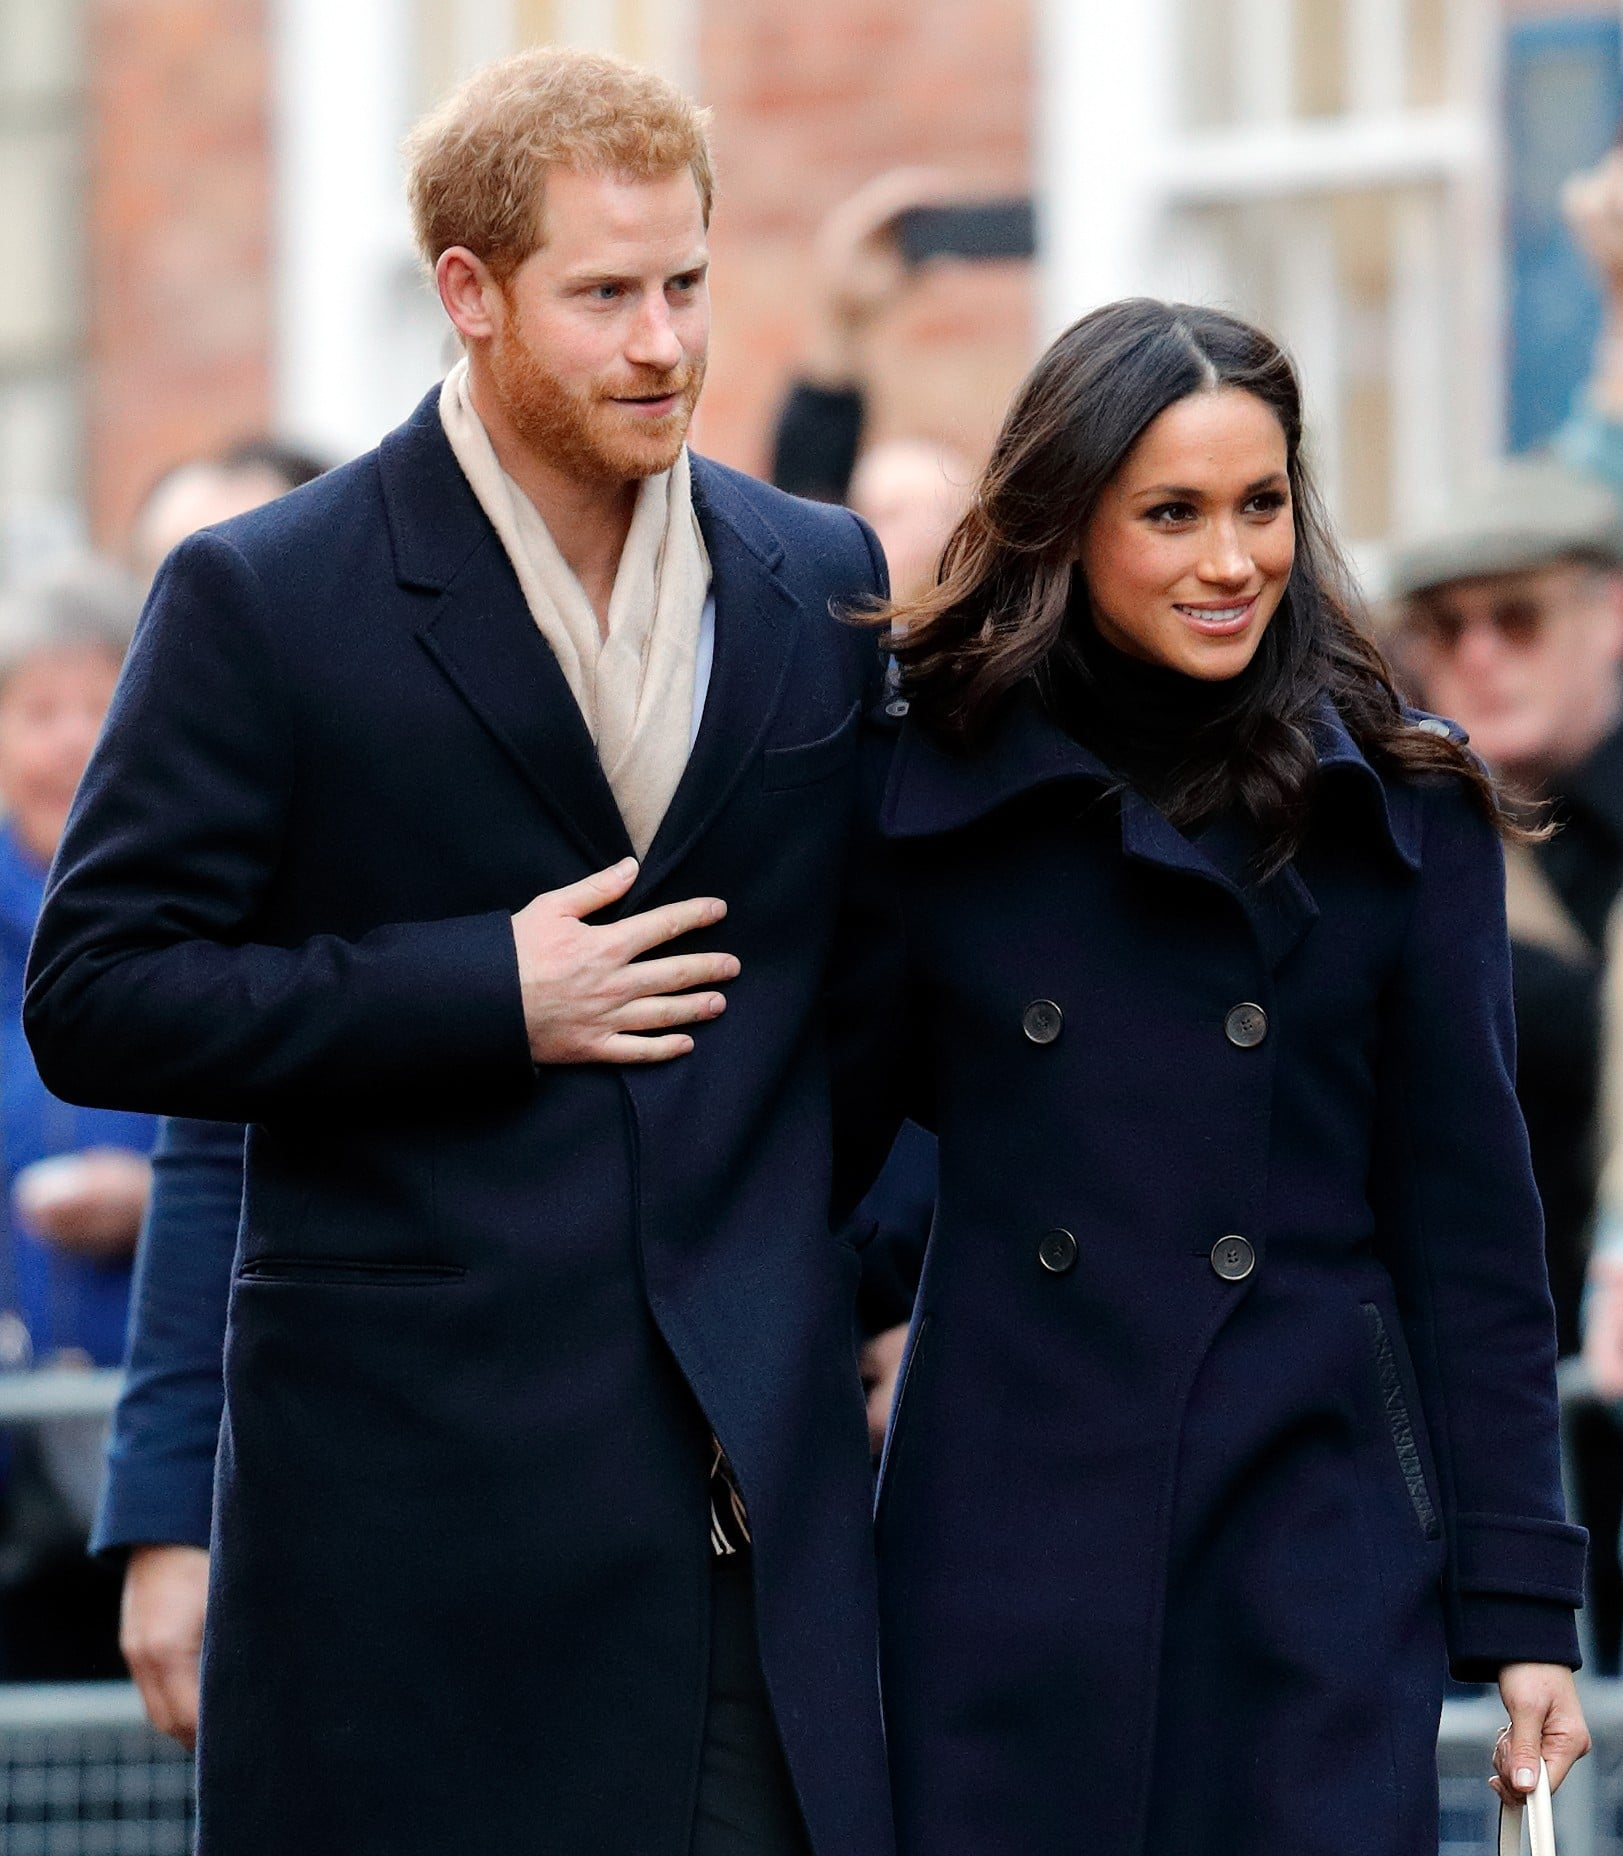 Prince Harry And Meghan Markle Receive Suspicious Package